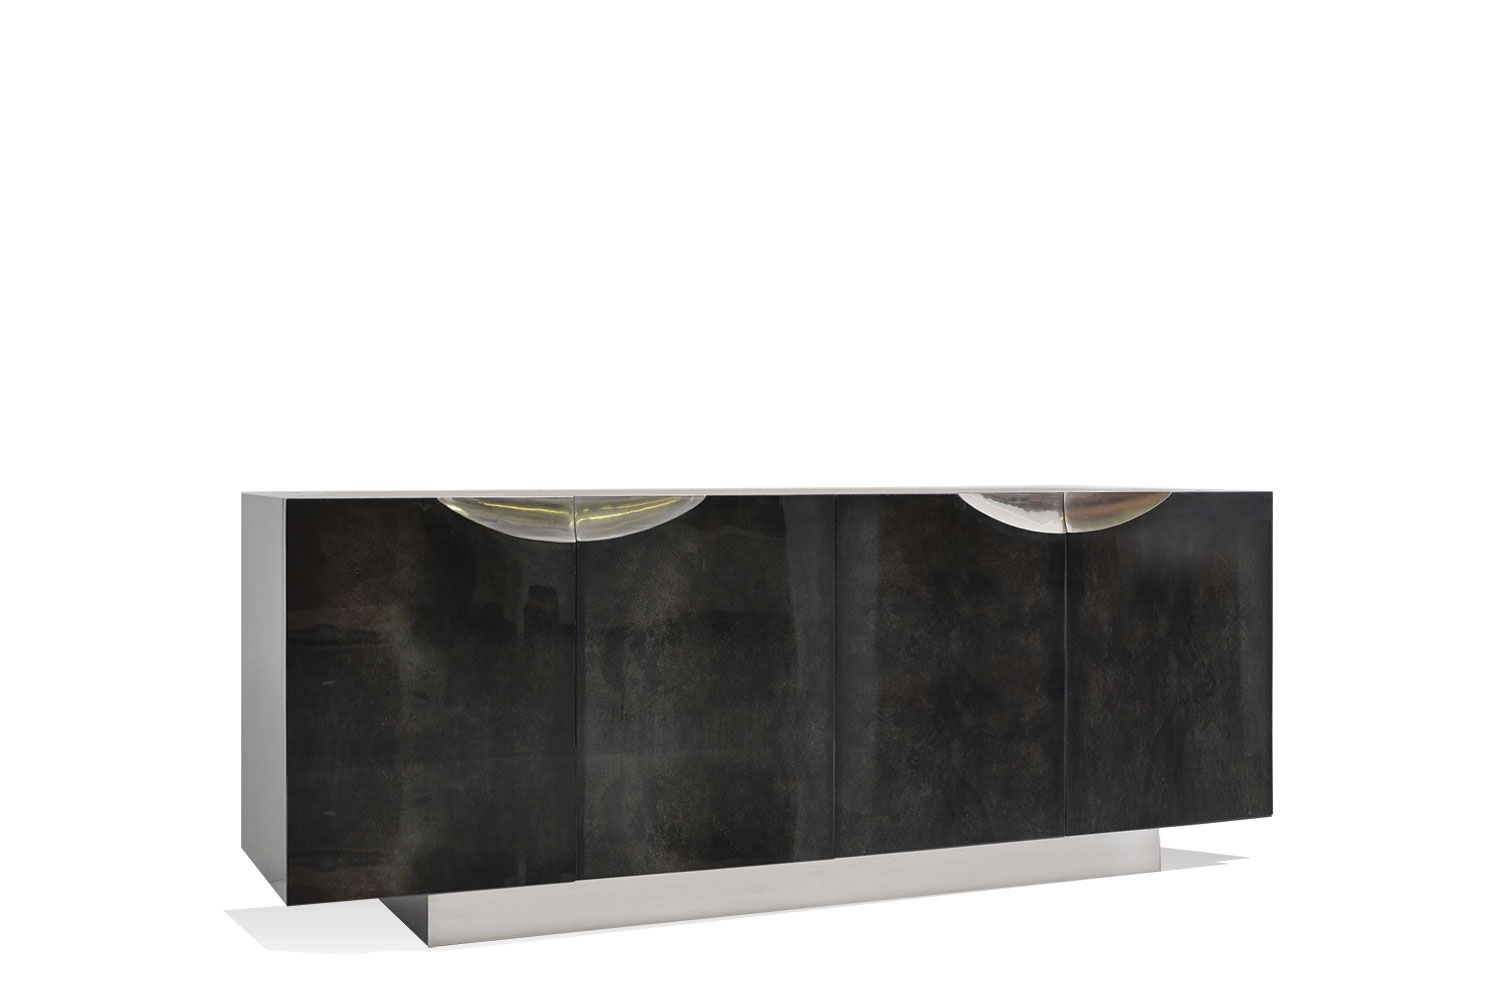 Sliver Sideboard - Stainless 0